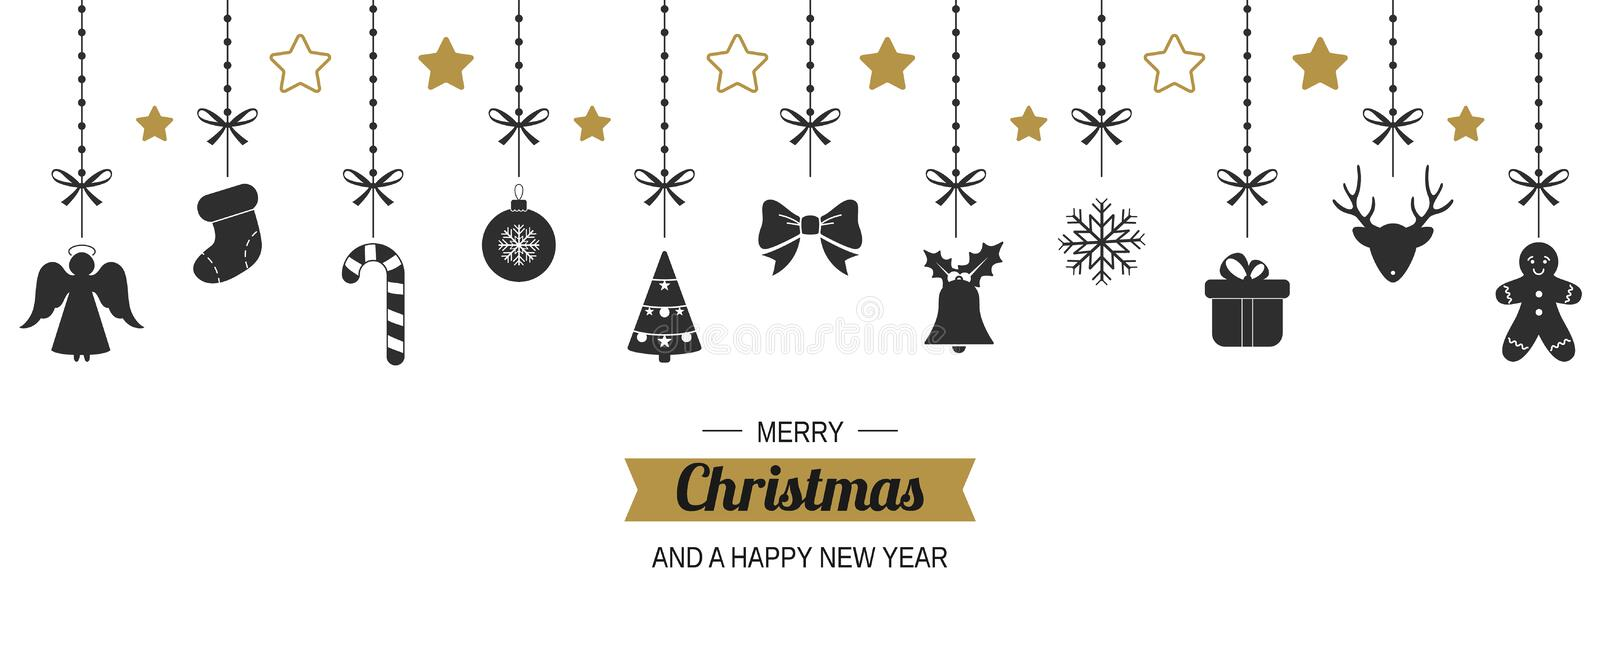 Hanging Christmas decorations. Christmas background. Vector vector illustration